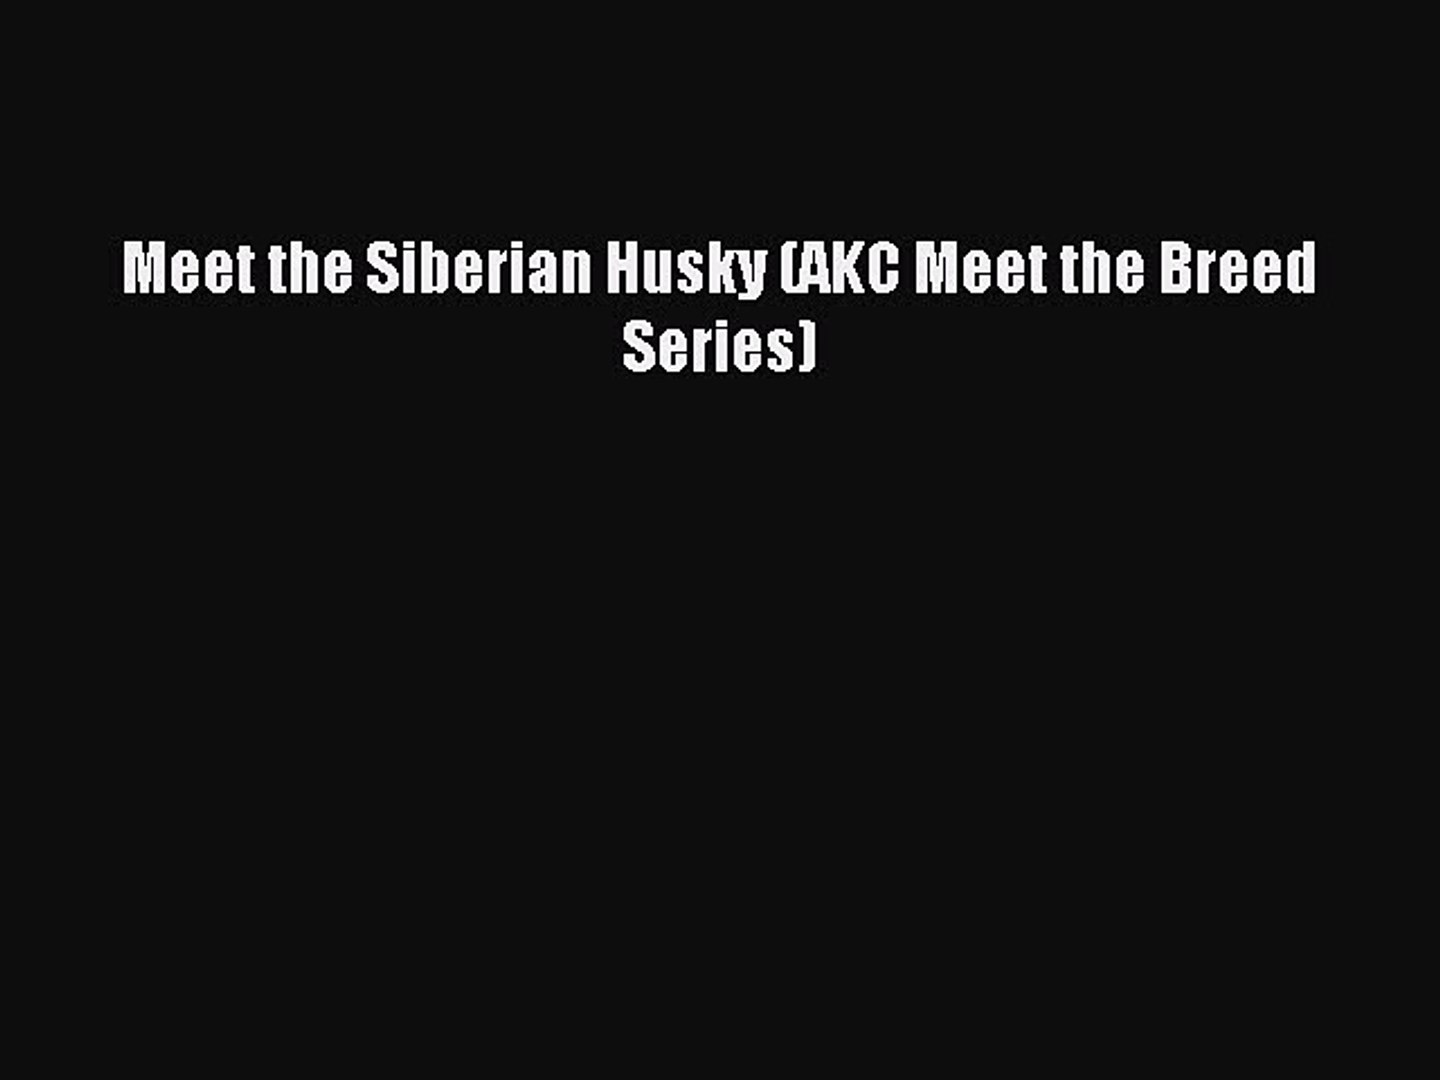 Download Meet the Siberian Husky (AKC Meet the Breed Series) Ebook Free